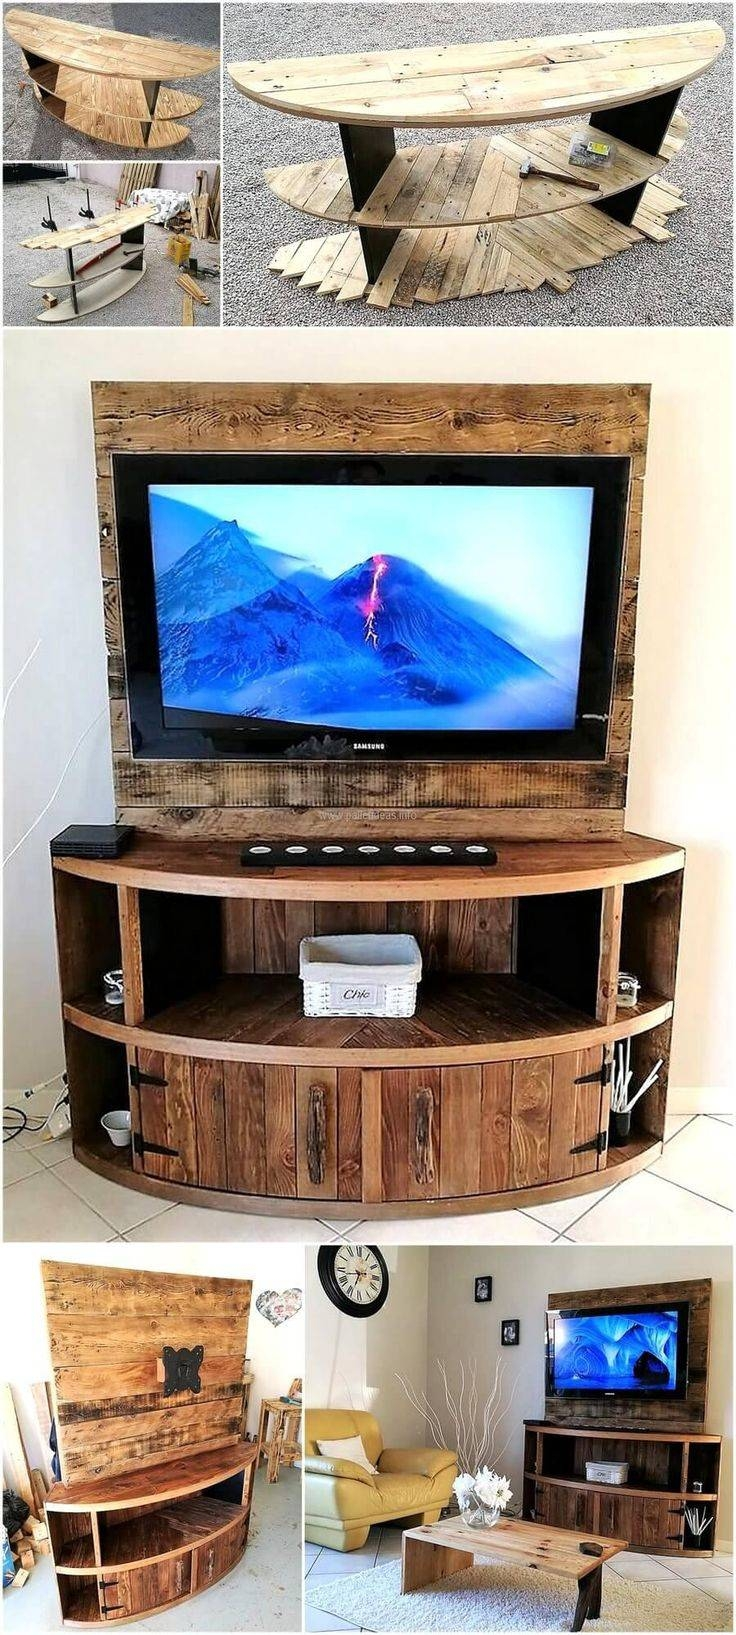 Best 25+ Pallet Tv Stands Ideas On Pinterest | Homemade Coffee With Regard To Tv Stands 38 Inches Wide (View 15 of 15)